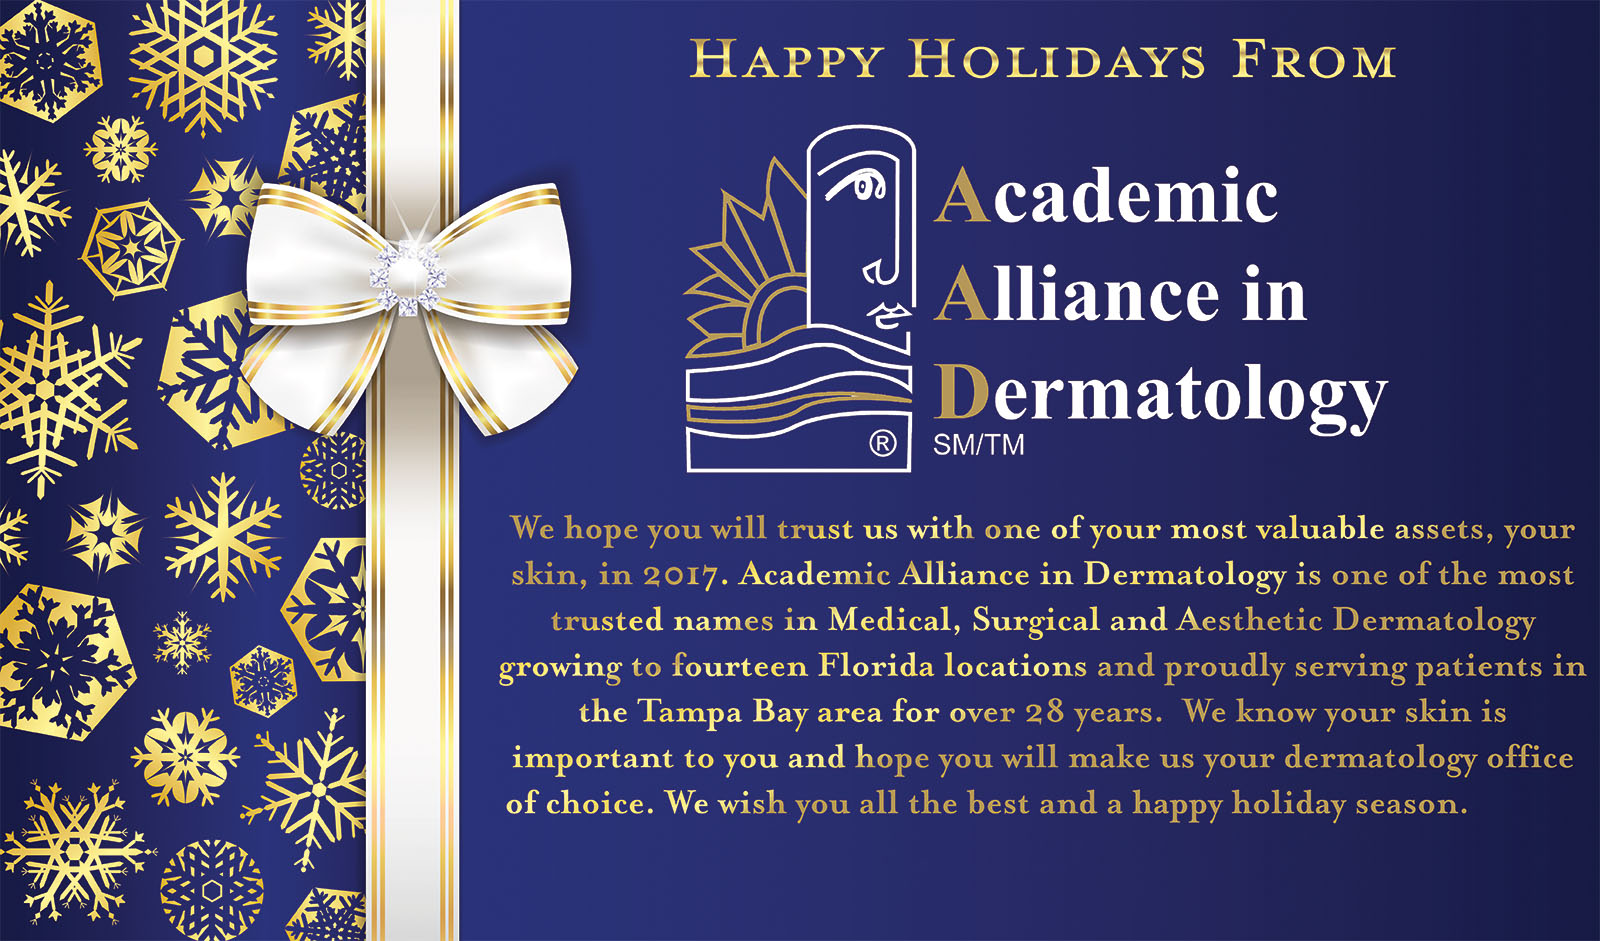 Appealing Happy Holidays Wishes From Academic Alliance Dermatology Happy Holidays Wishes Italian Happy Holidays Wishes Family Dermatology Happy Holidays Wishes From Academic Alliance inspiration Happy Holidays Wishes